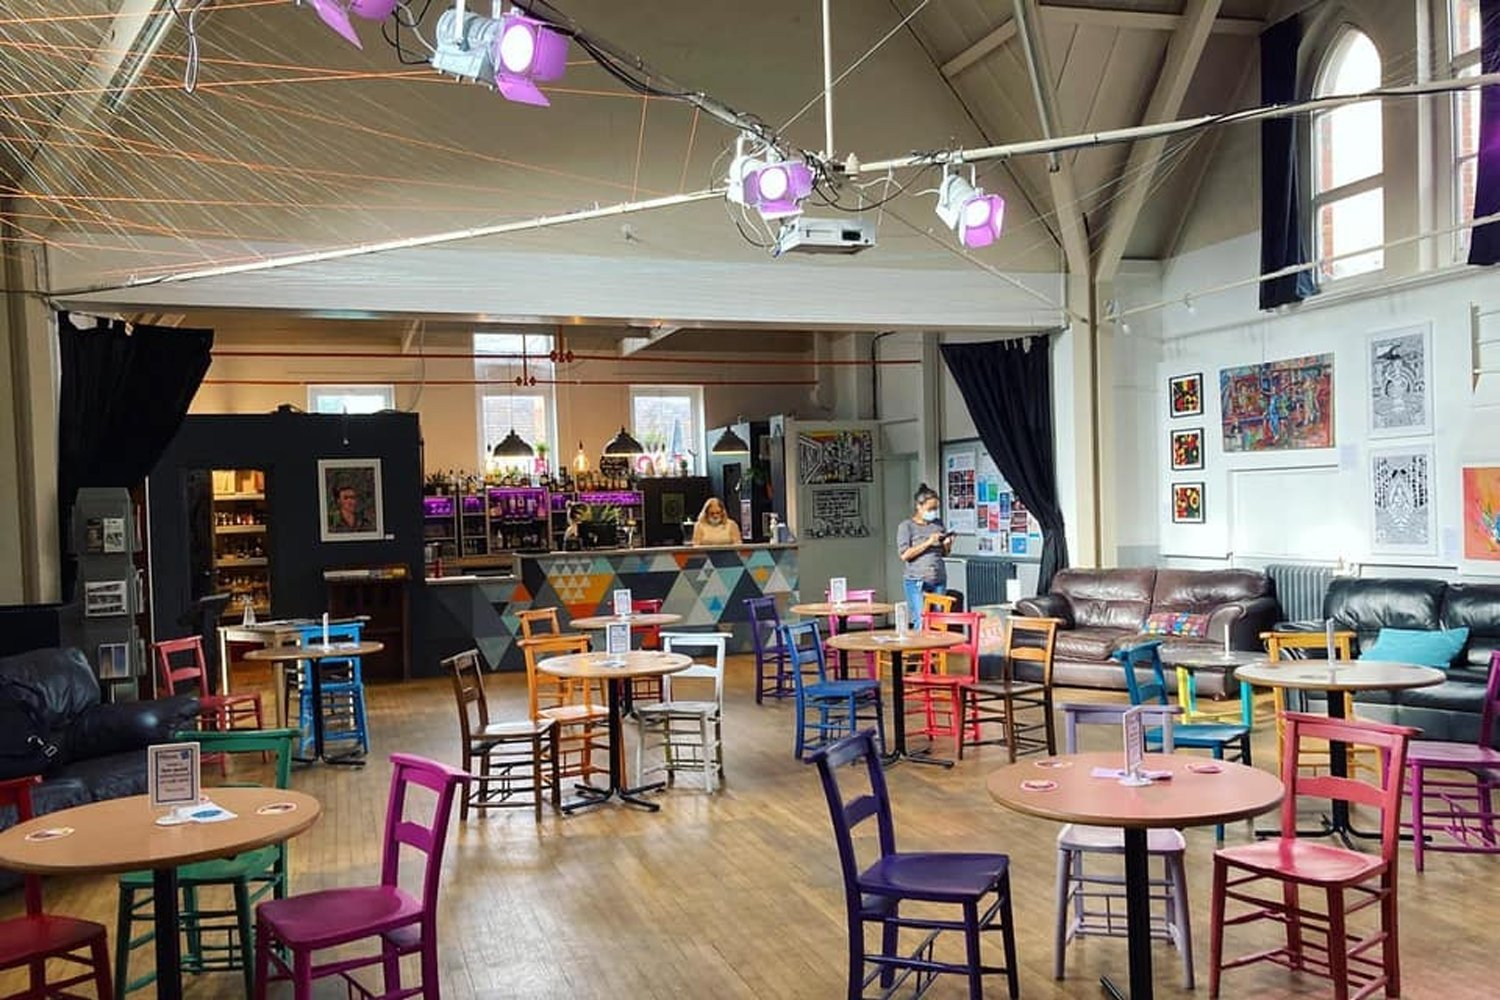 Cafe Space at Wycombe Arts Centre